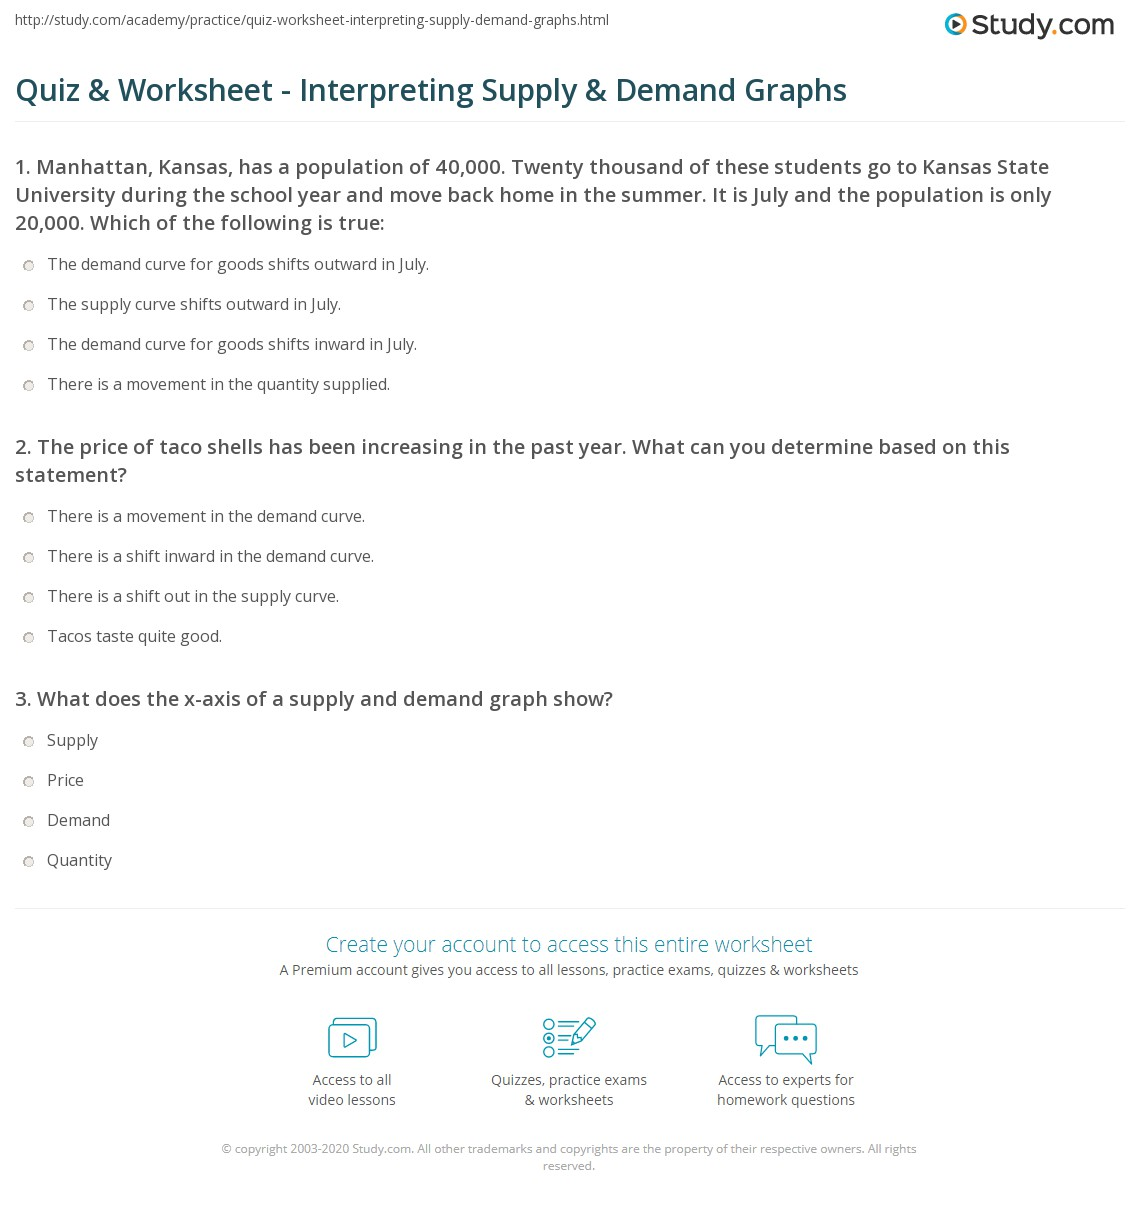 quiz u0026 worksheet interpreting supply u0026 demand graphs study com